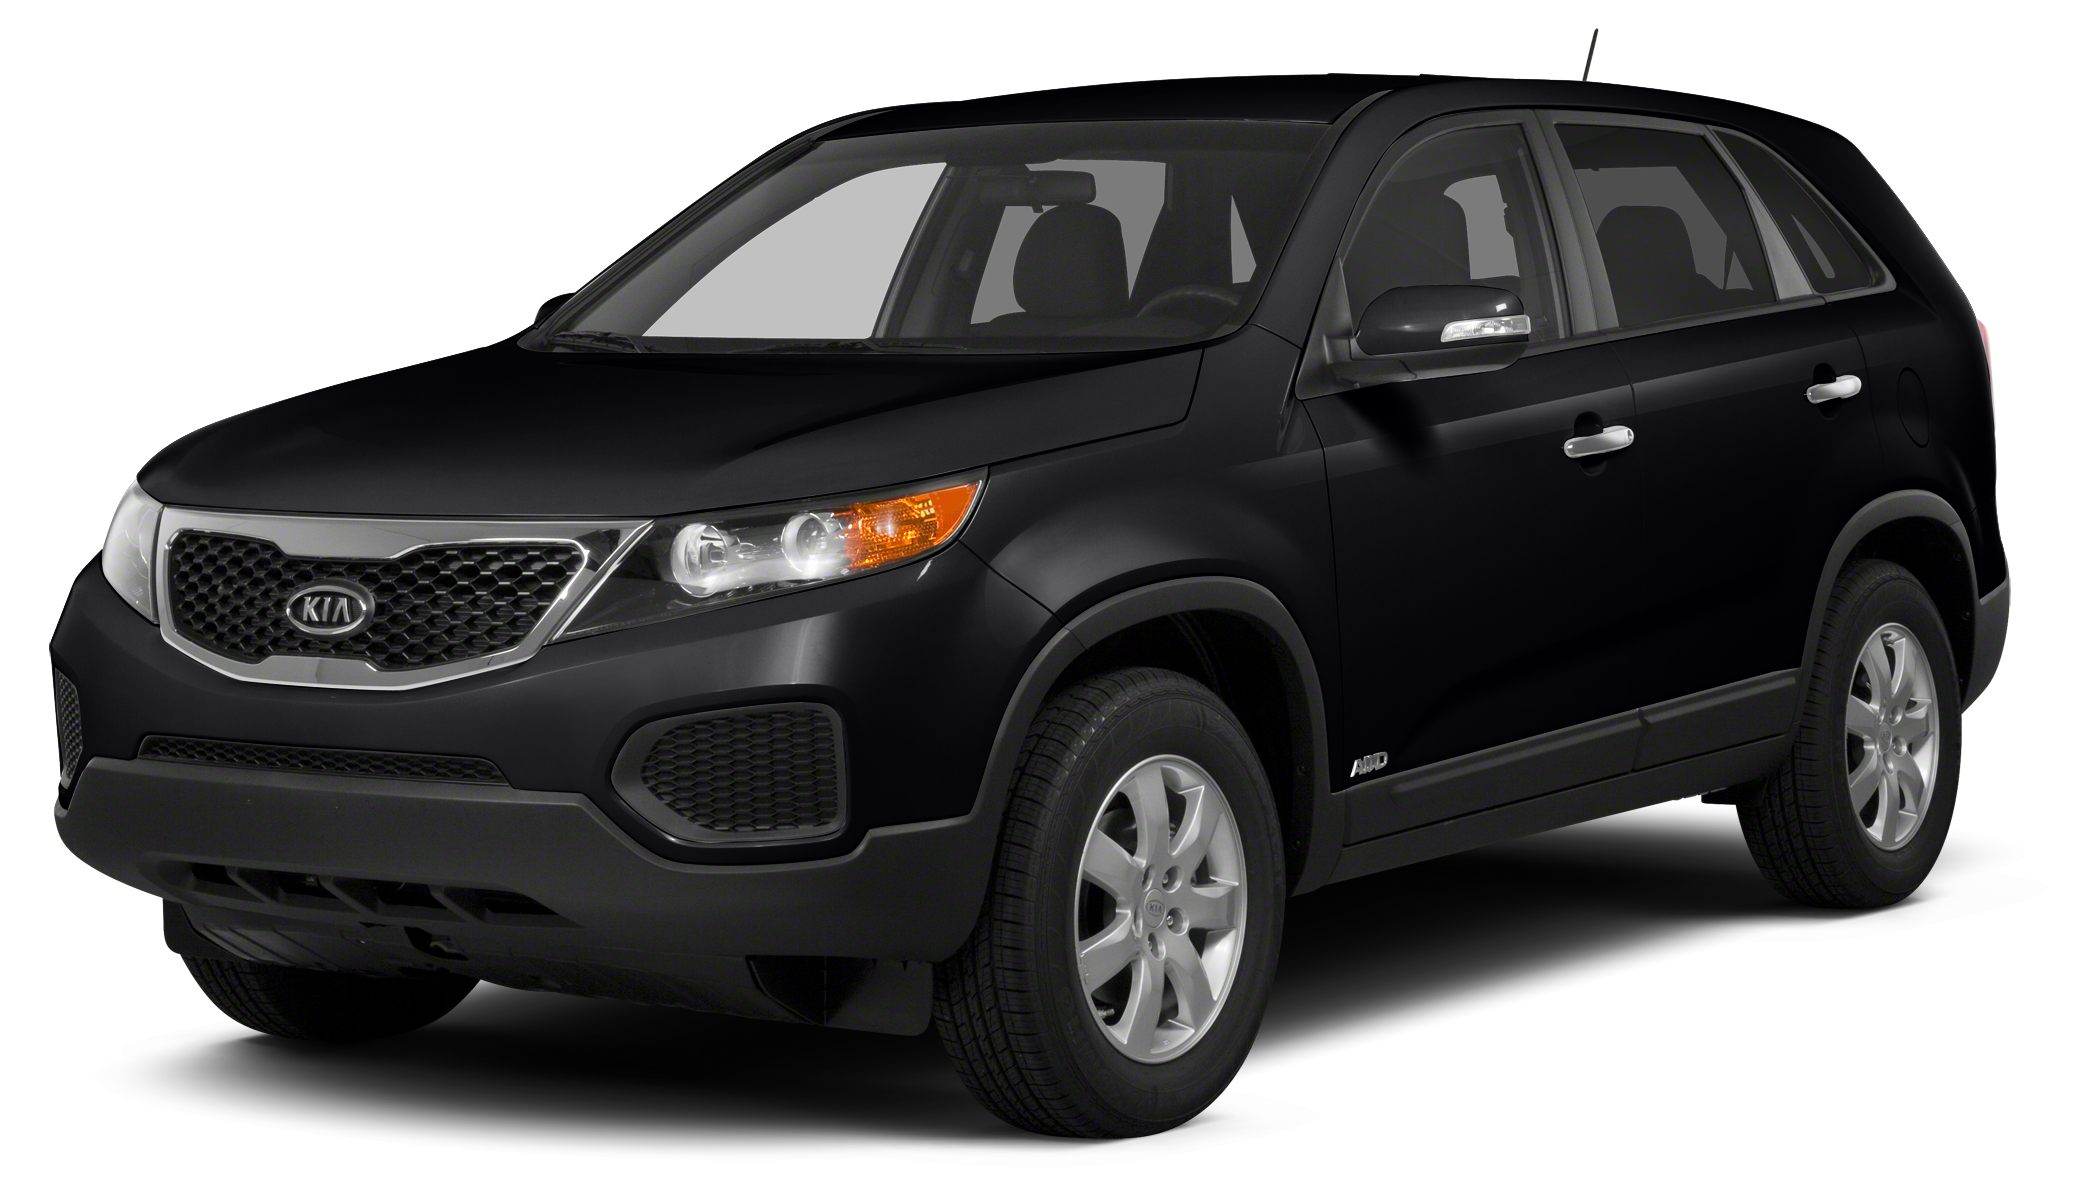 2013 Kia Sorento LX AWD Power Windows and Locks Satellite CD with MP3 and Steering wheel control